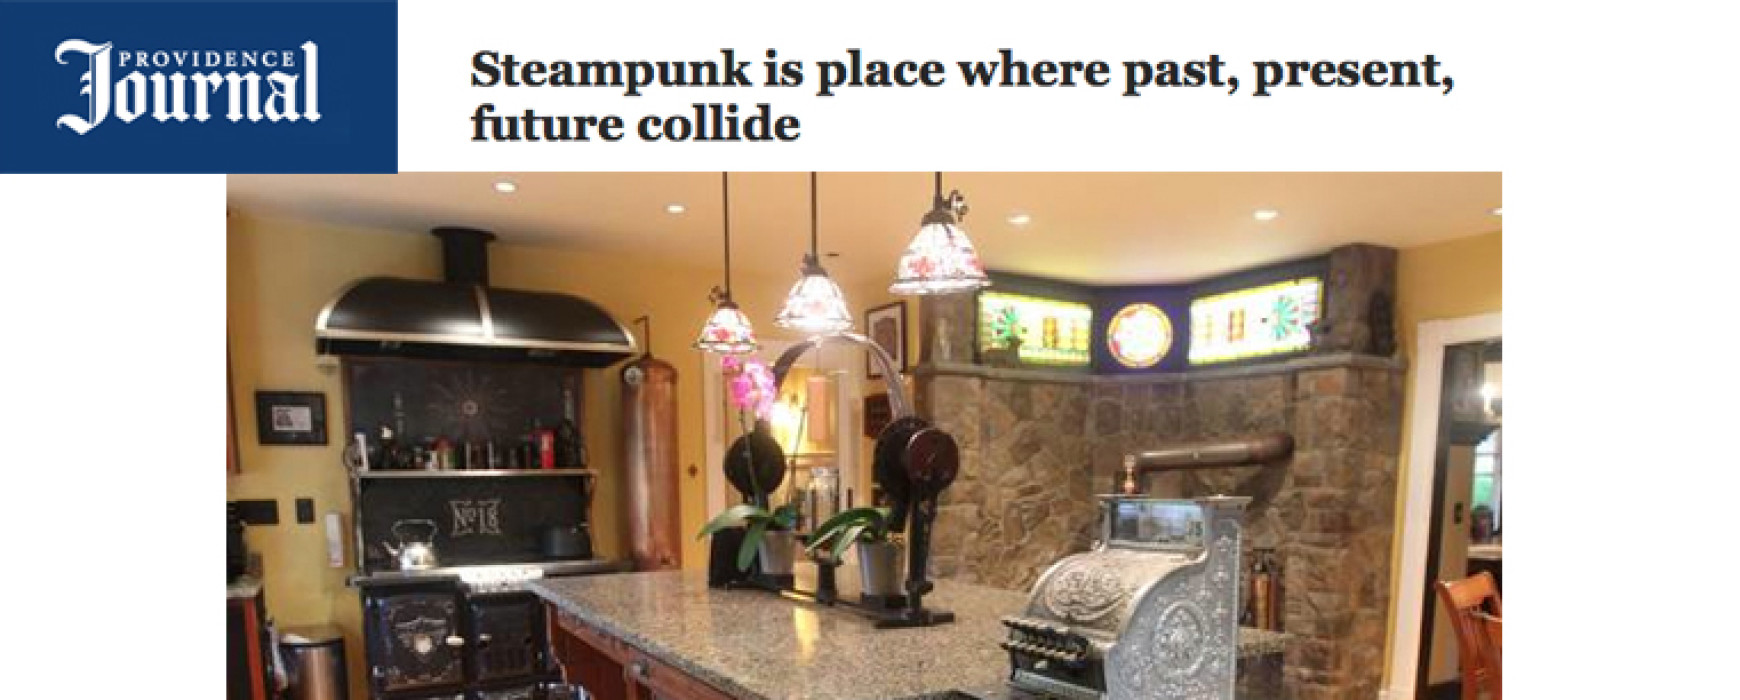 Providence Journal: Steampunk is place where past, present, future collide